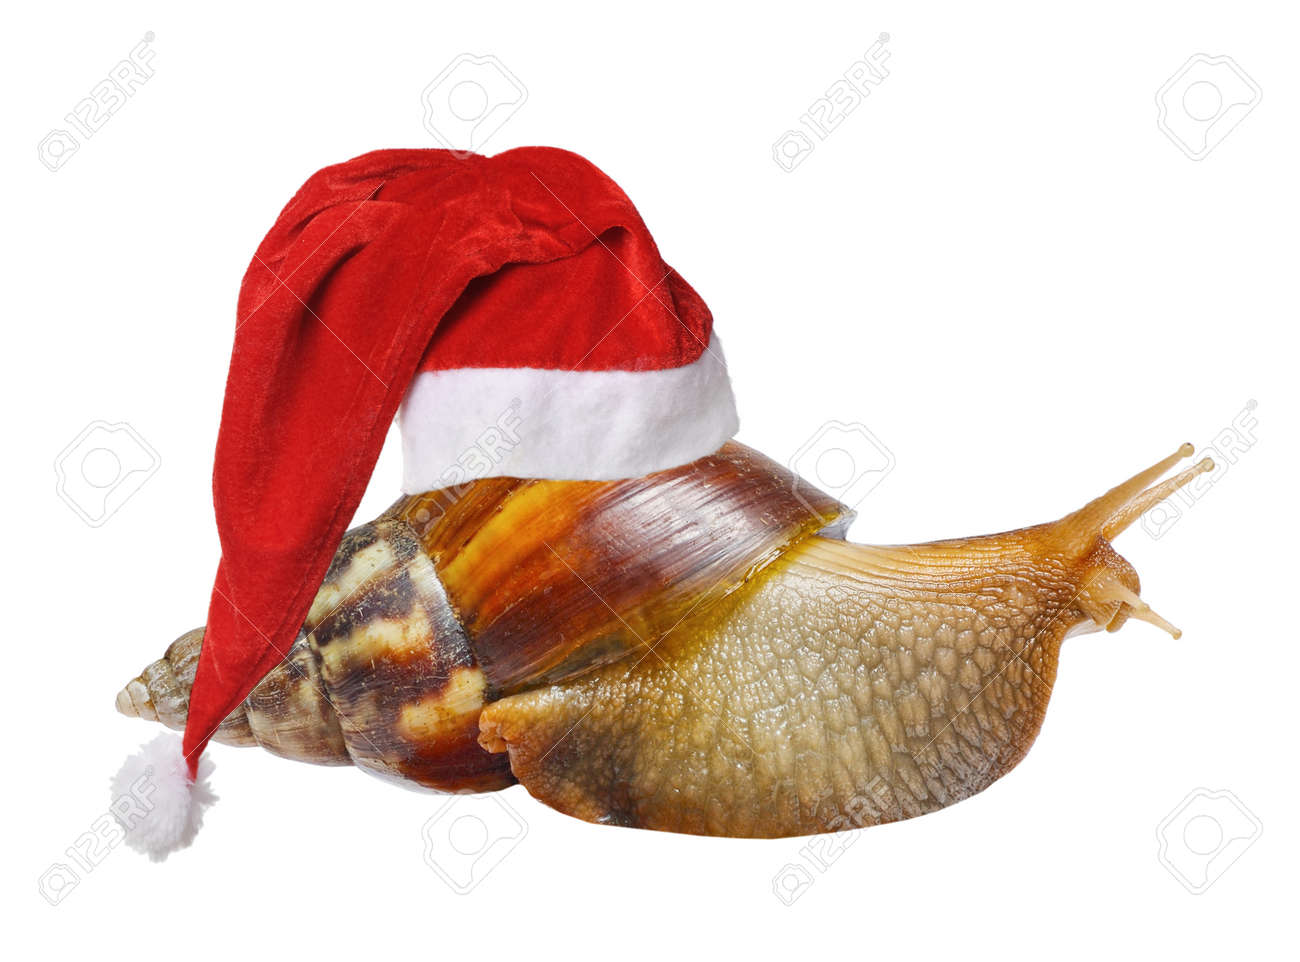 297c4d1252039 Big snail in Santa hat isolated on white background Stock Photo - 32781158